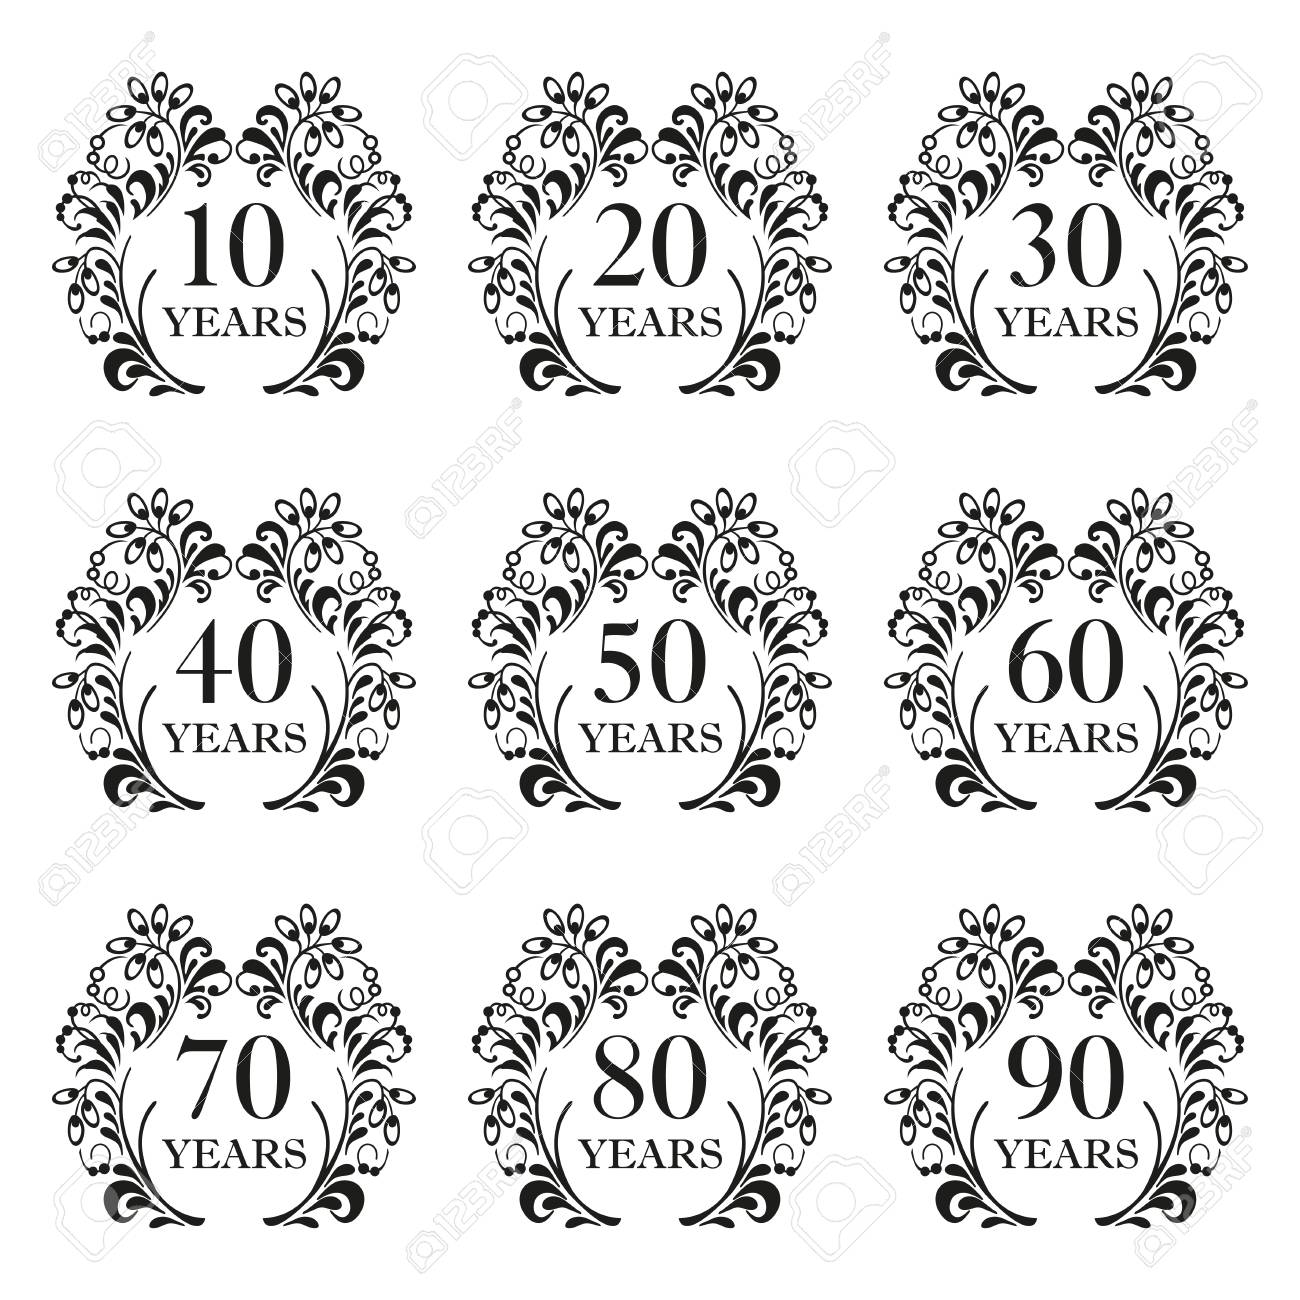 Anniversary Icon Set. Anniversary Symbols In Ornate Frame With ...